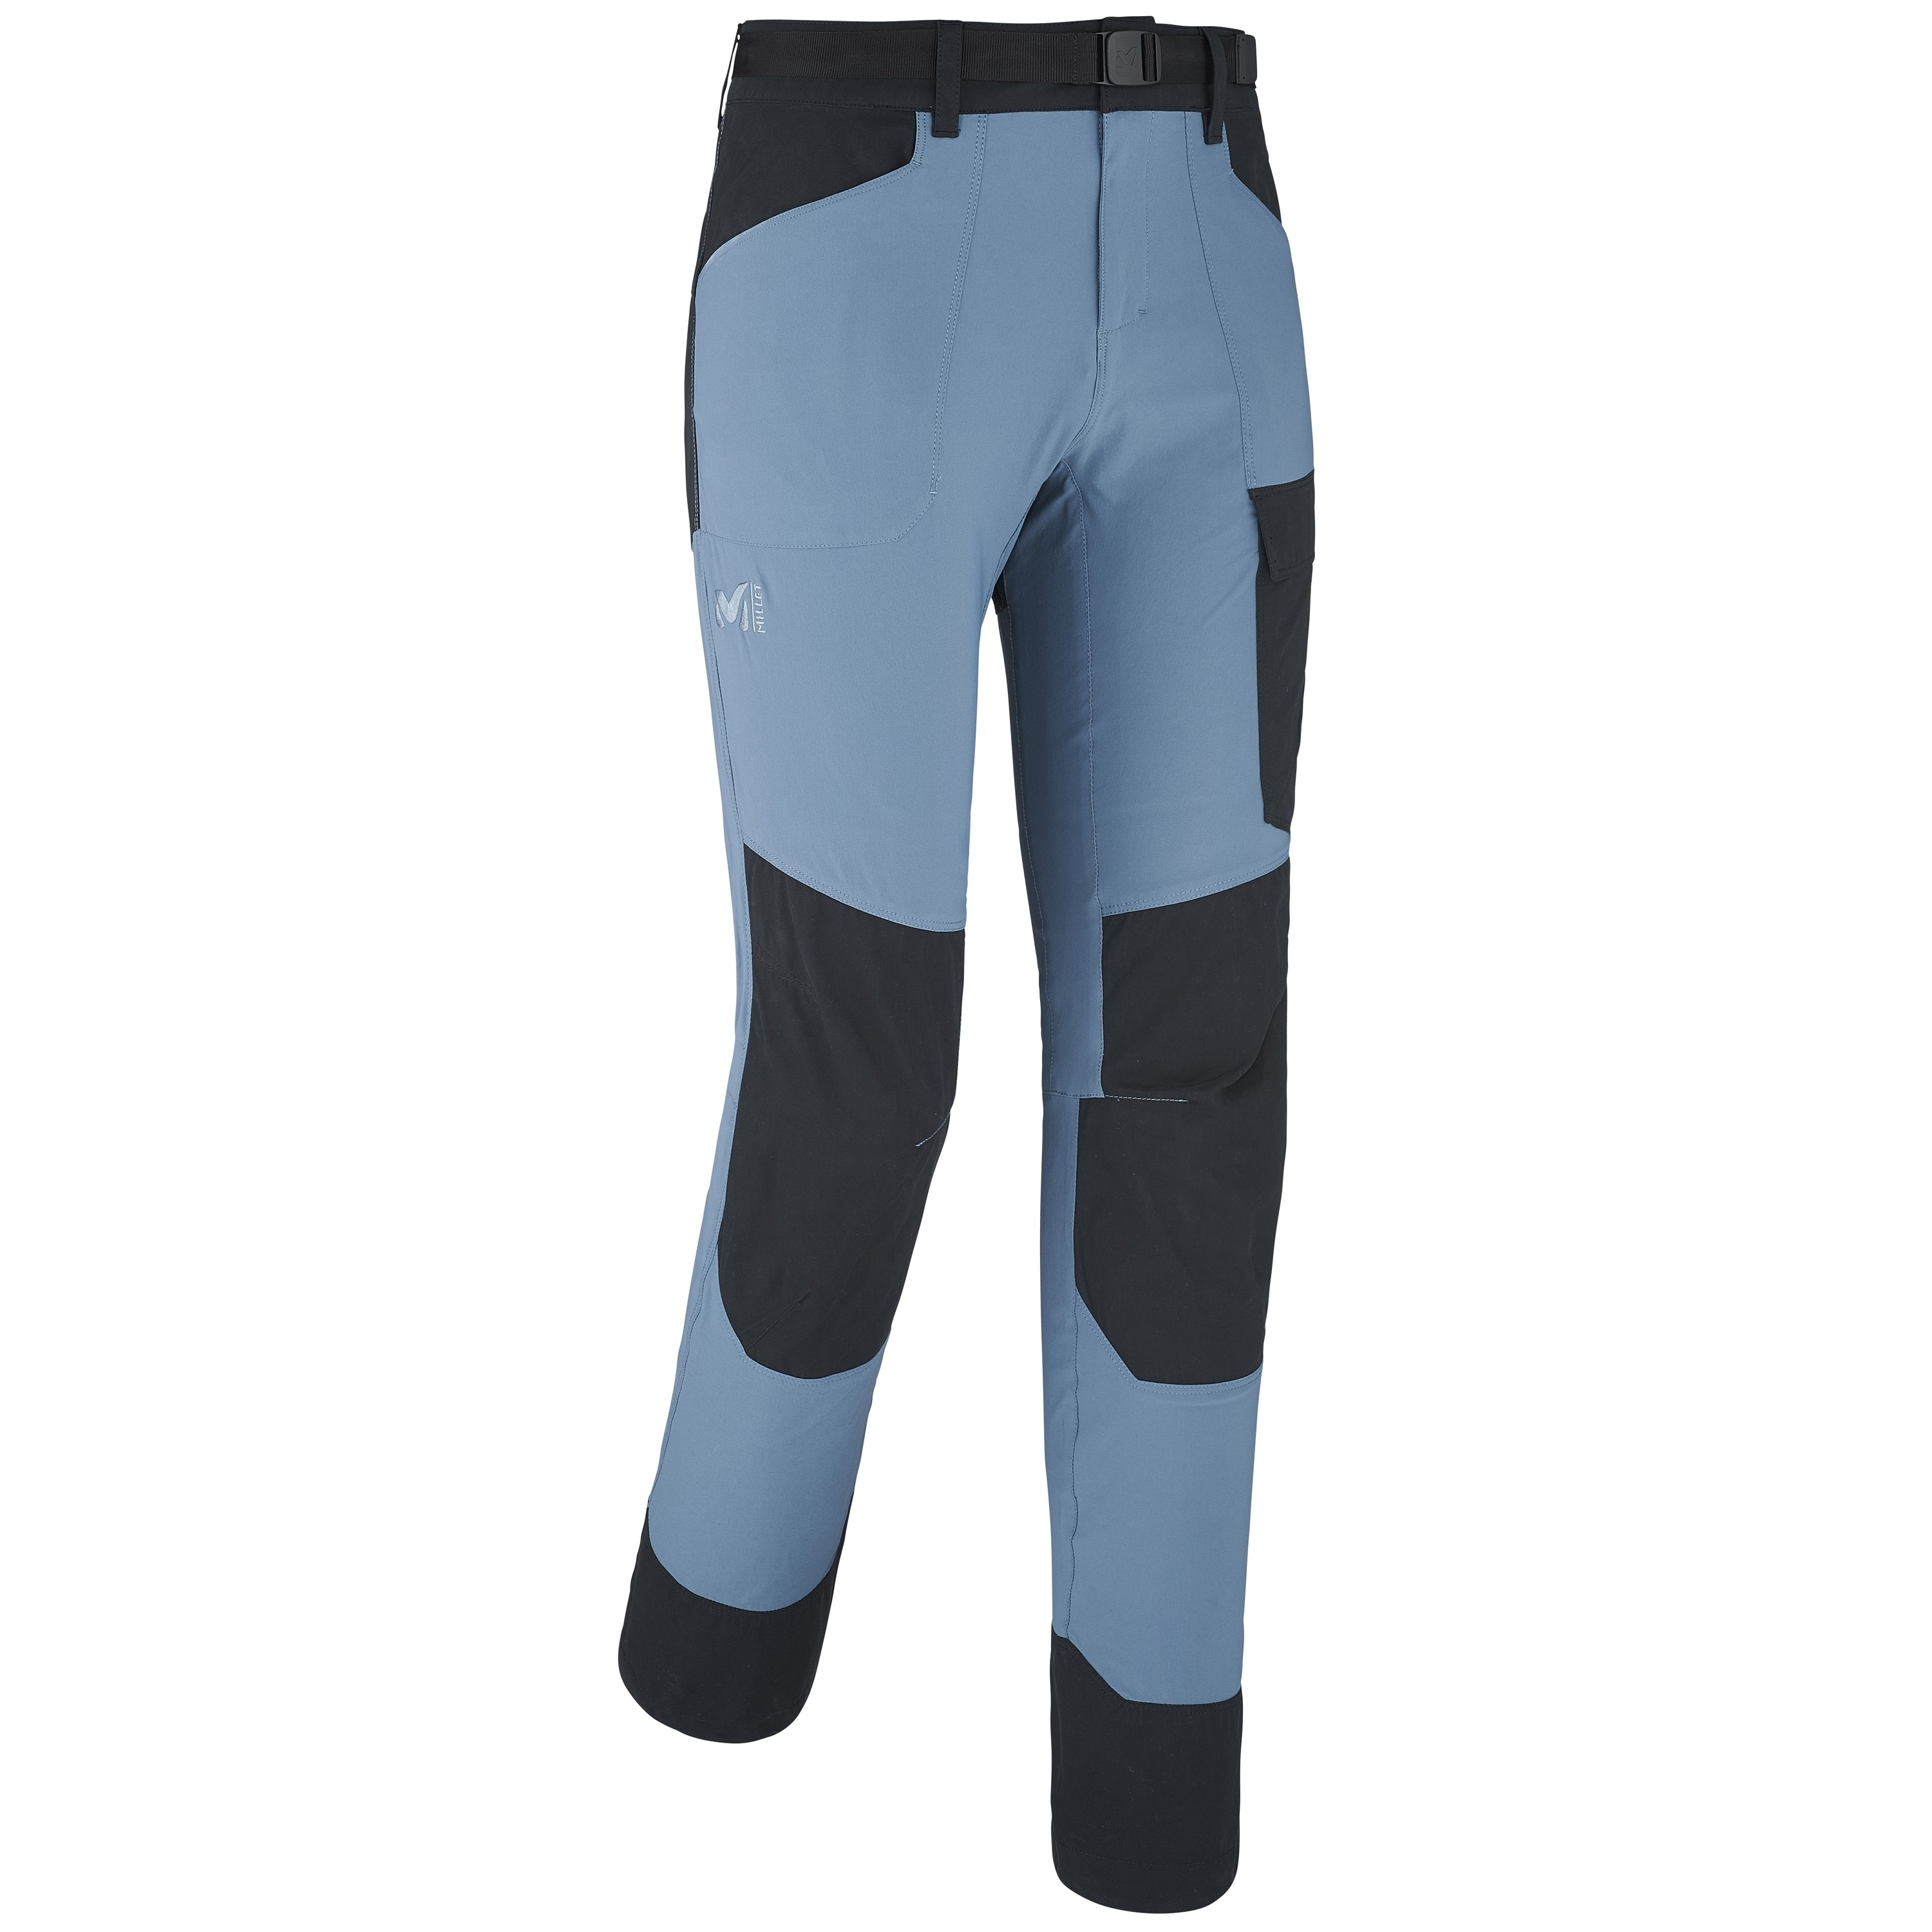 VOSTOK STRETCH PANT